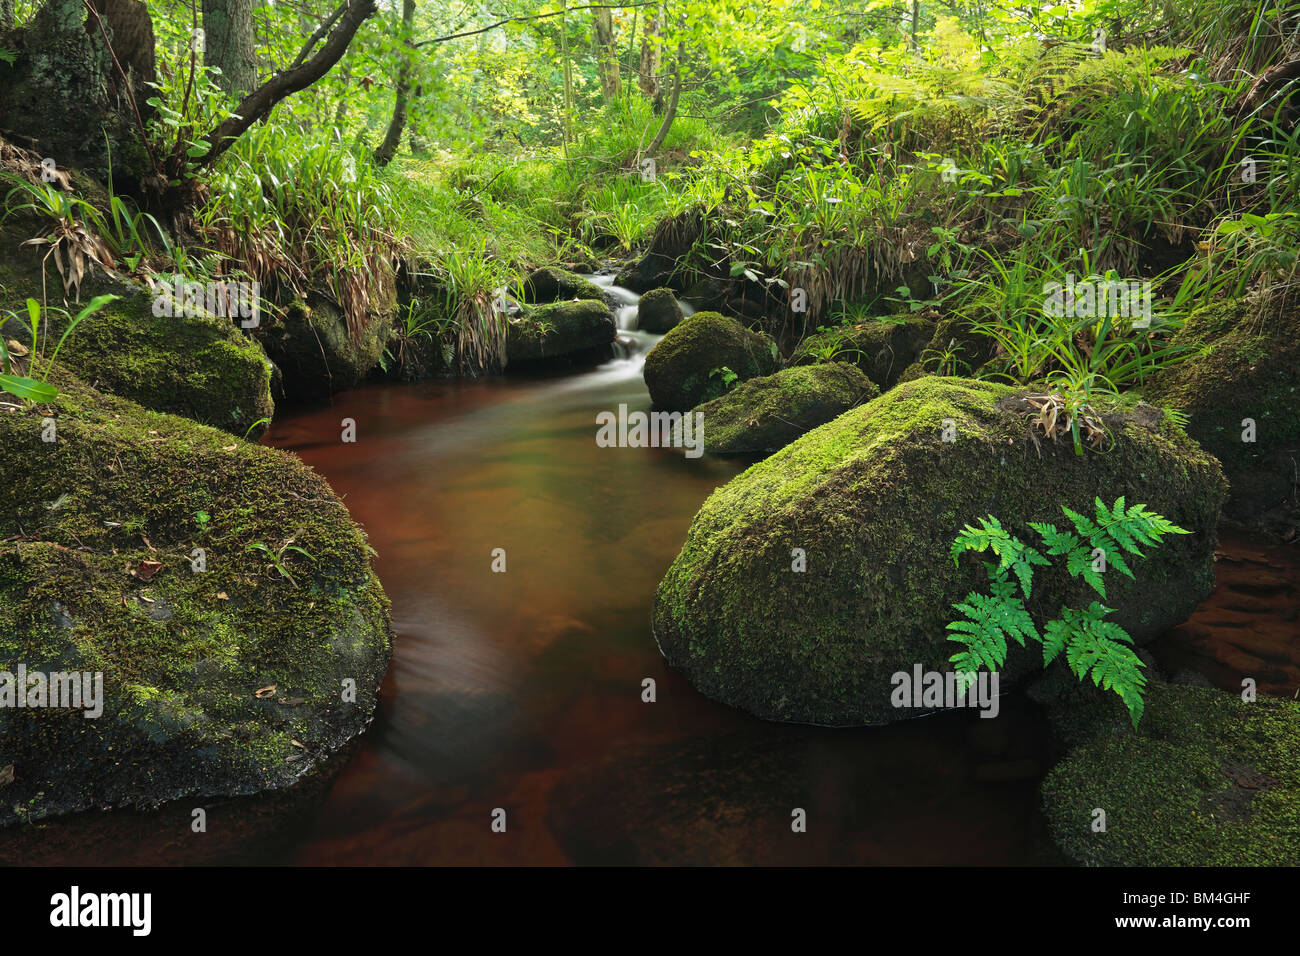 A lone fern clings to a moss-covered rock in Padley Gorge, Grindleford, Peak District, Derbyshire - Stock Image